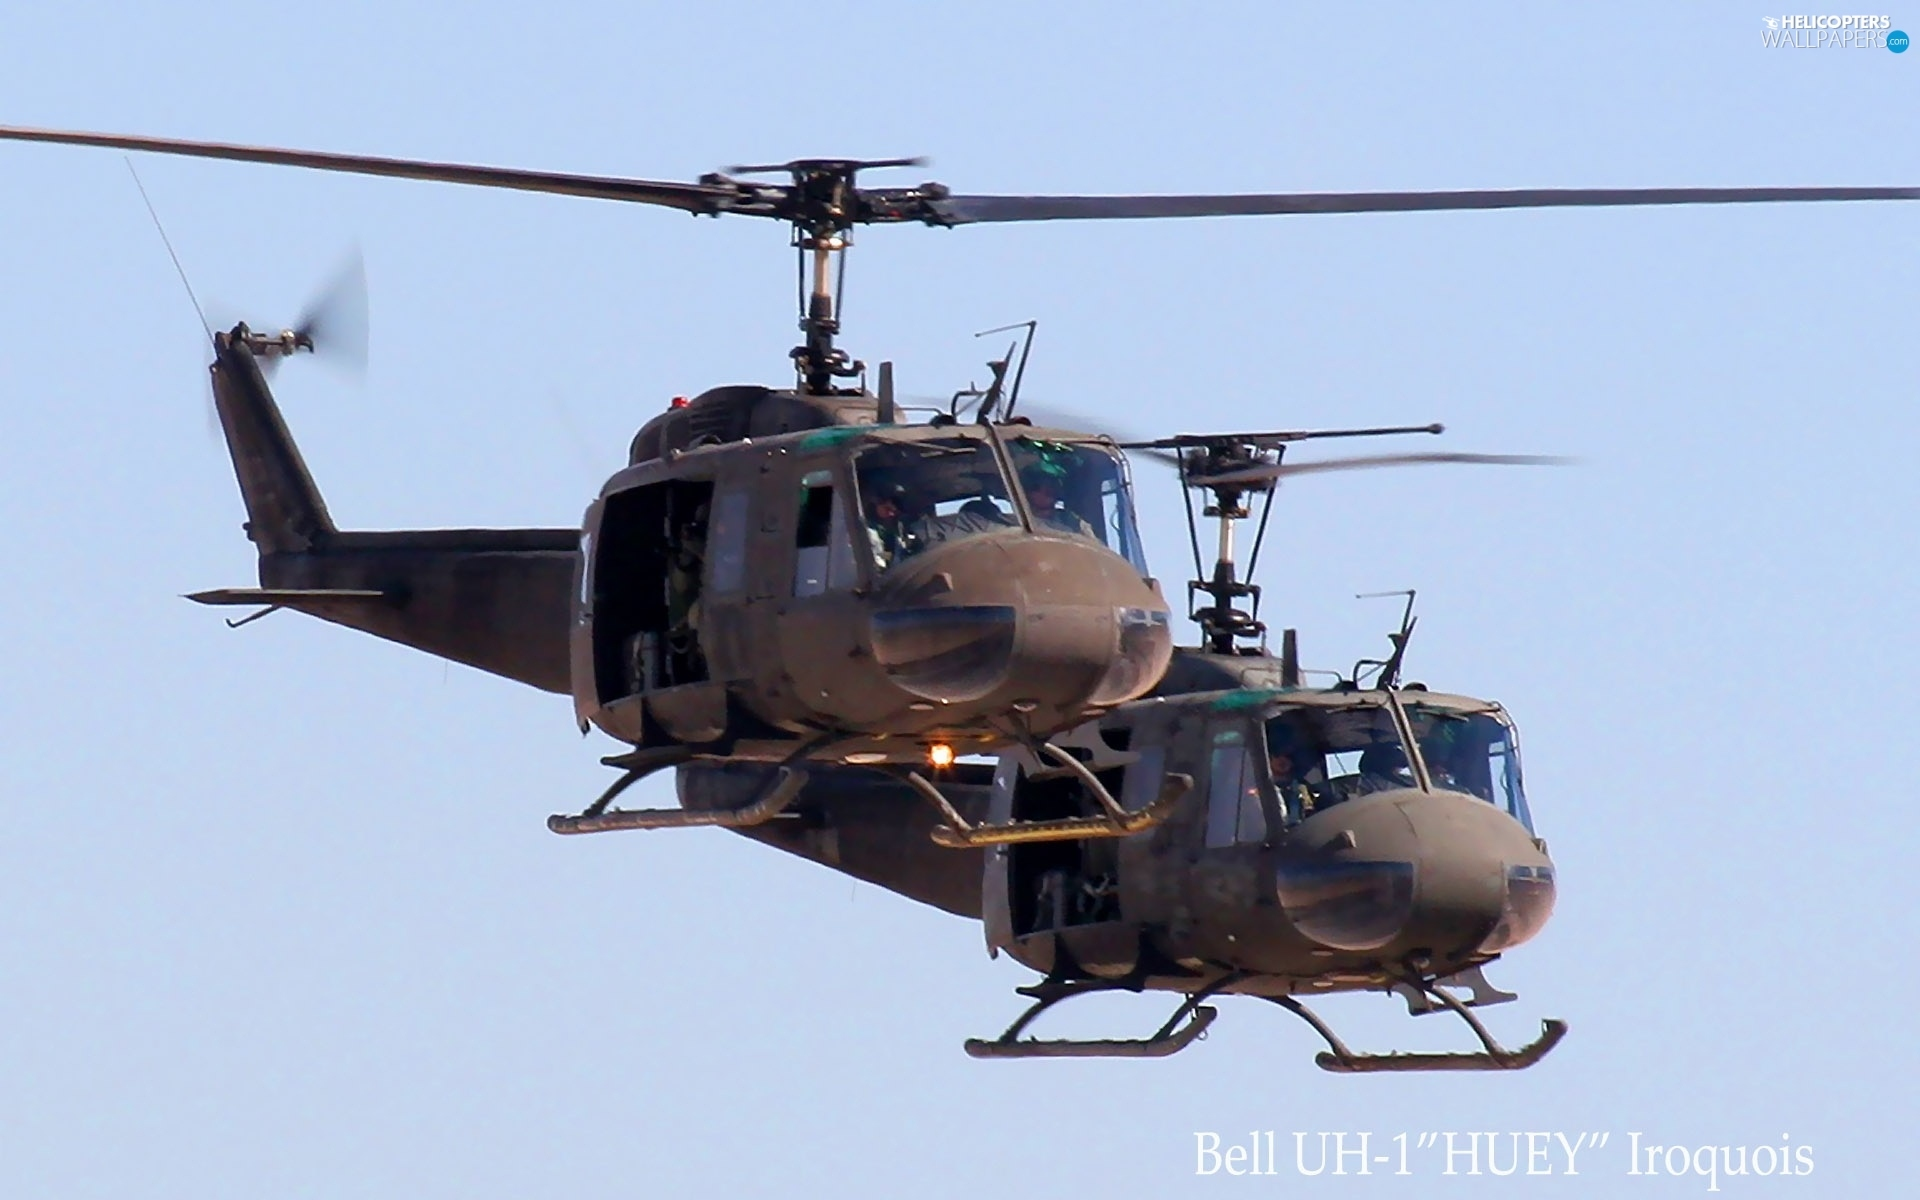 Elicottero Uh 1 : Bell uh huey iroquois helicopters wallpapers